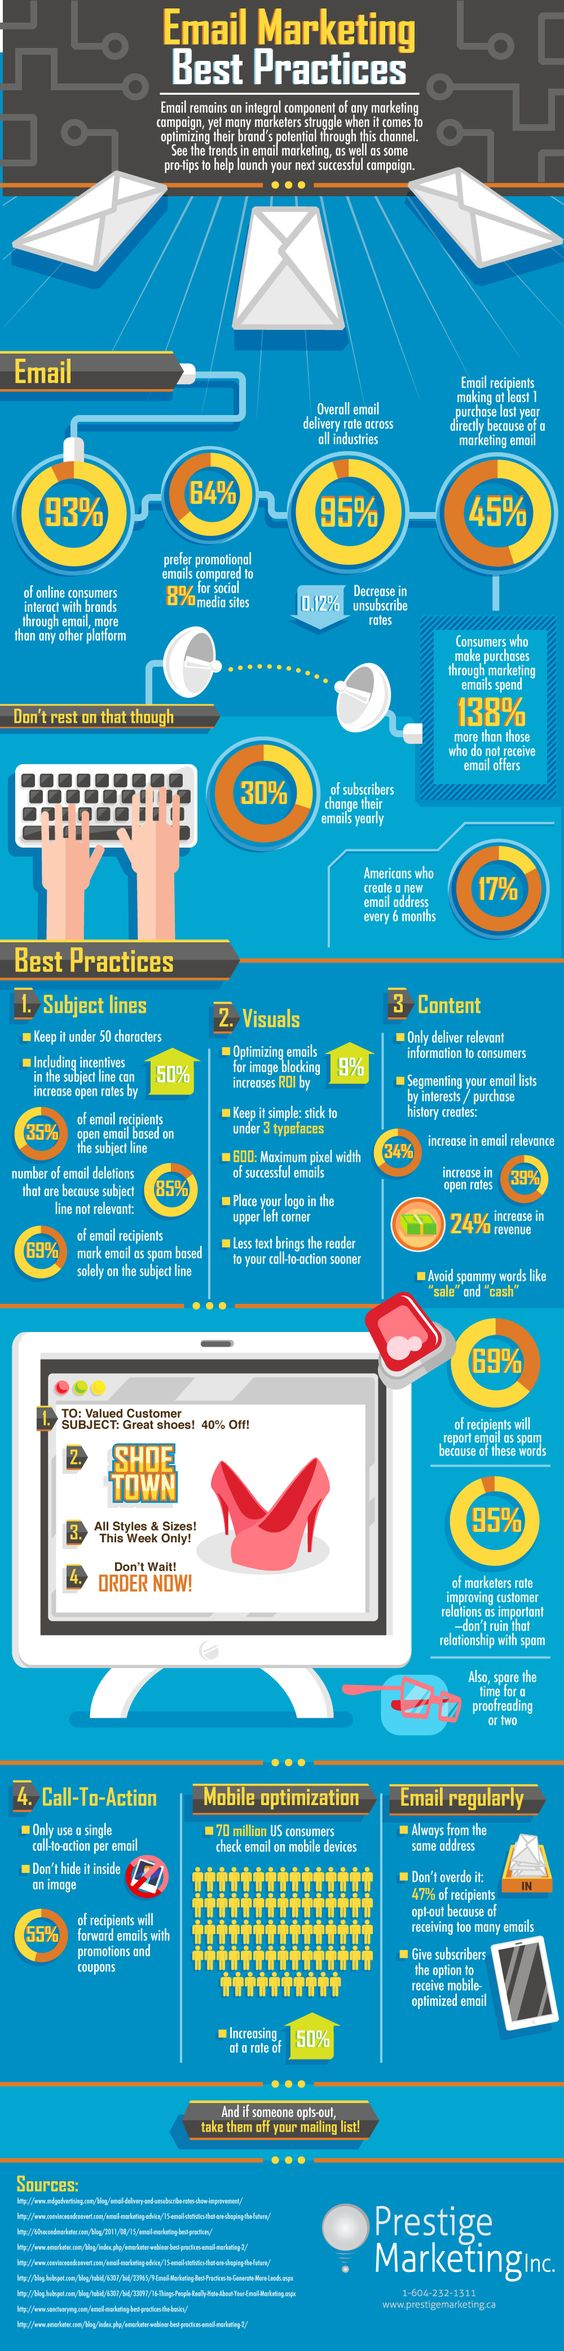 Liked on Pinterest: Las mejores prácticas en email marketing #infografia #infographic #internet #marketing Vía @alfredovela visit my blog http://ift.tt/1oxJDem